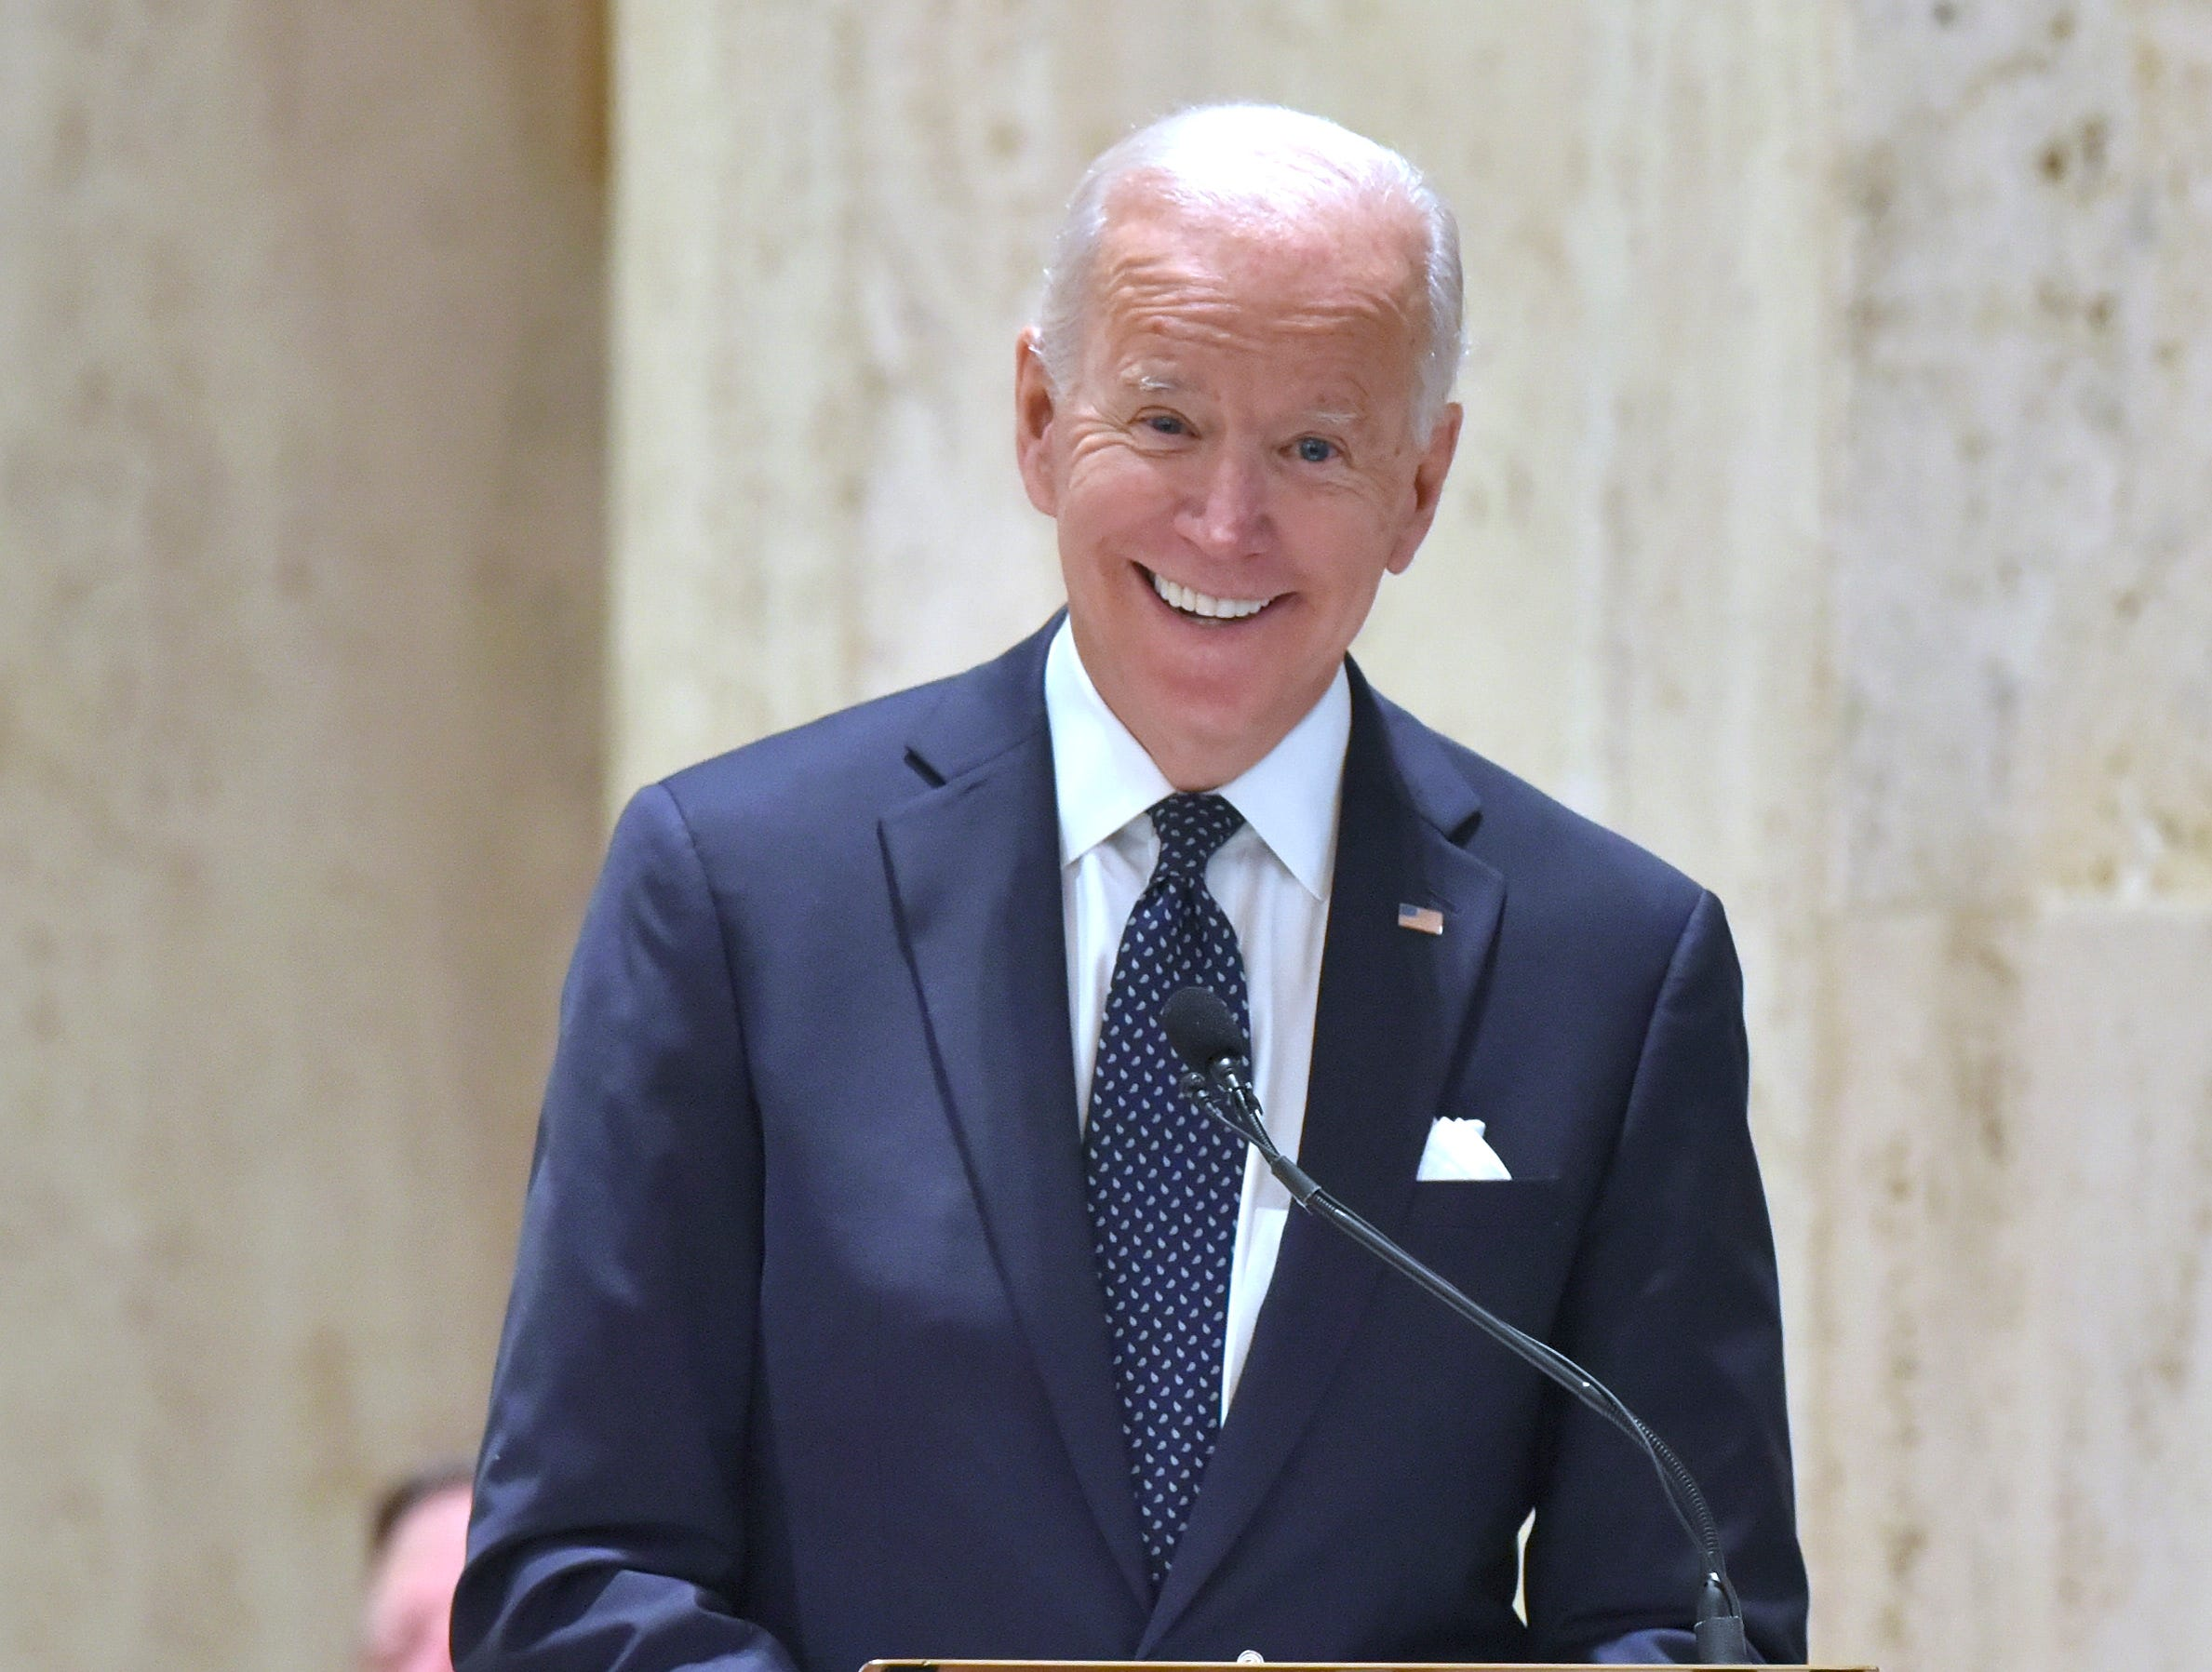 Former U.S. Vice President Joe Biden tells a joke during his speech.